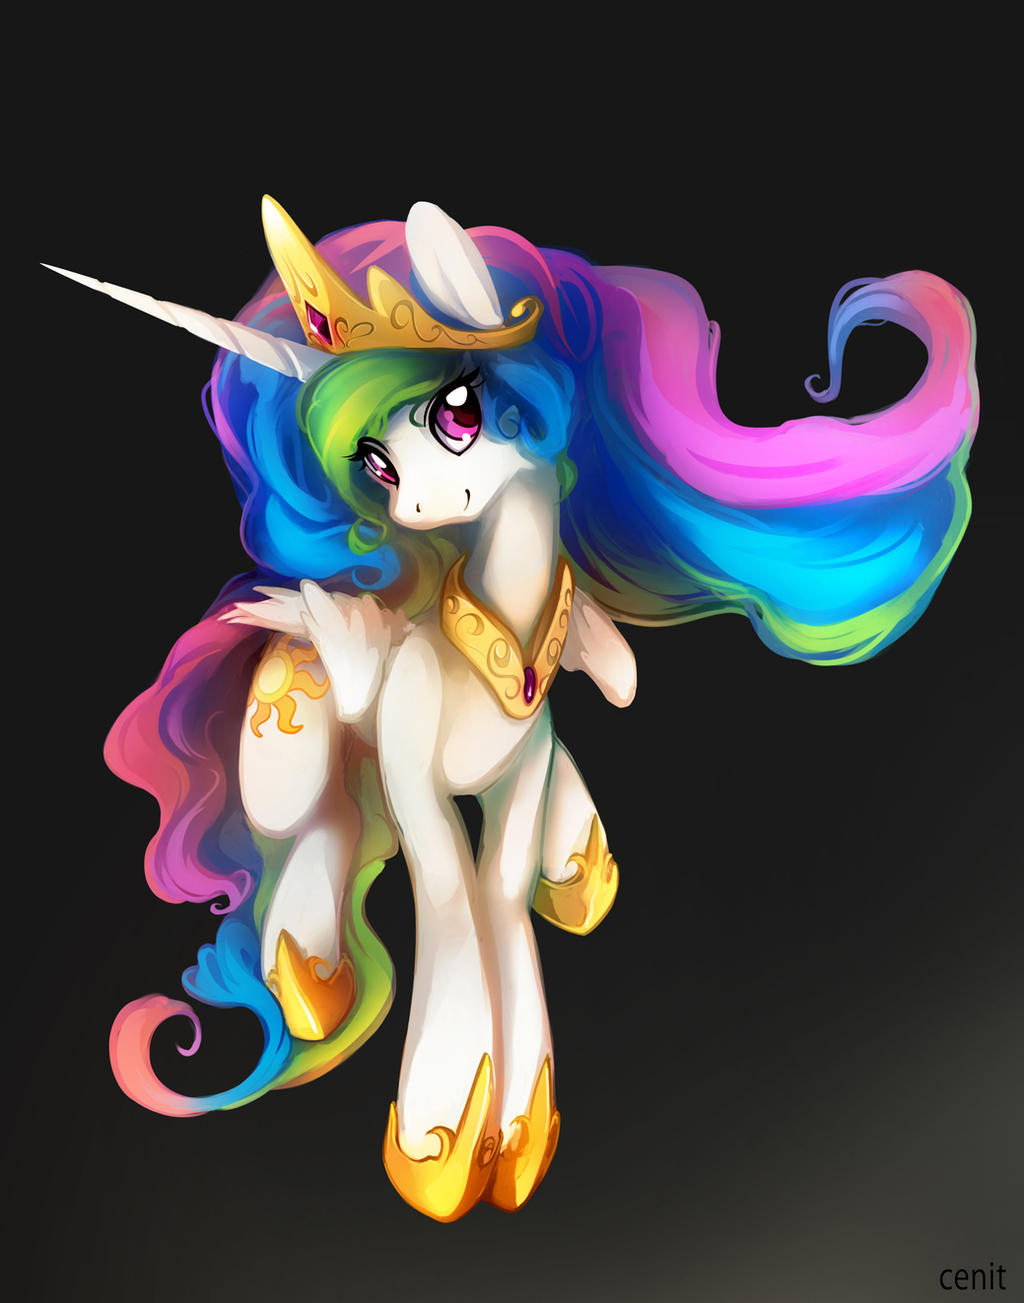 Celestia-Warm days by Cenit-v